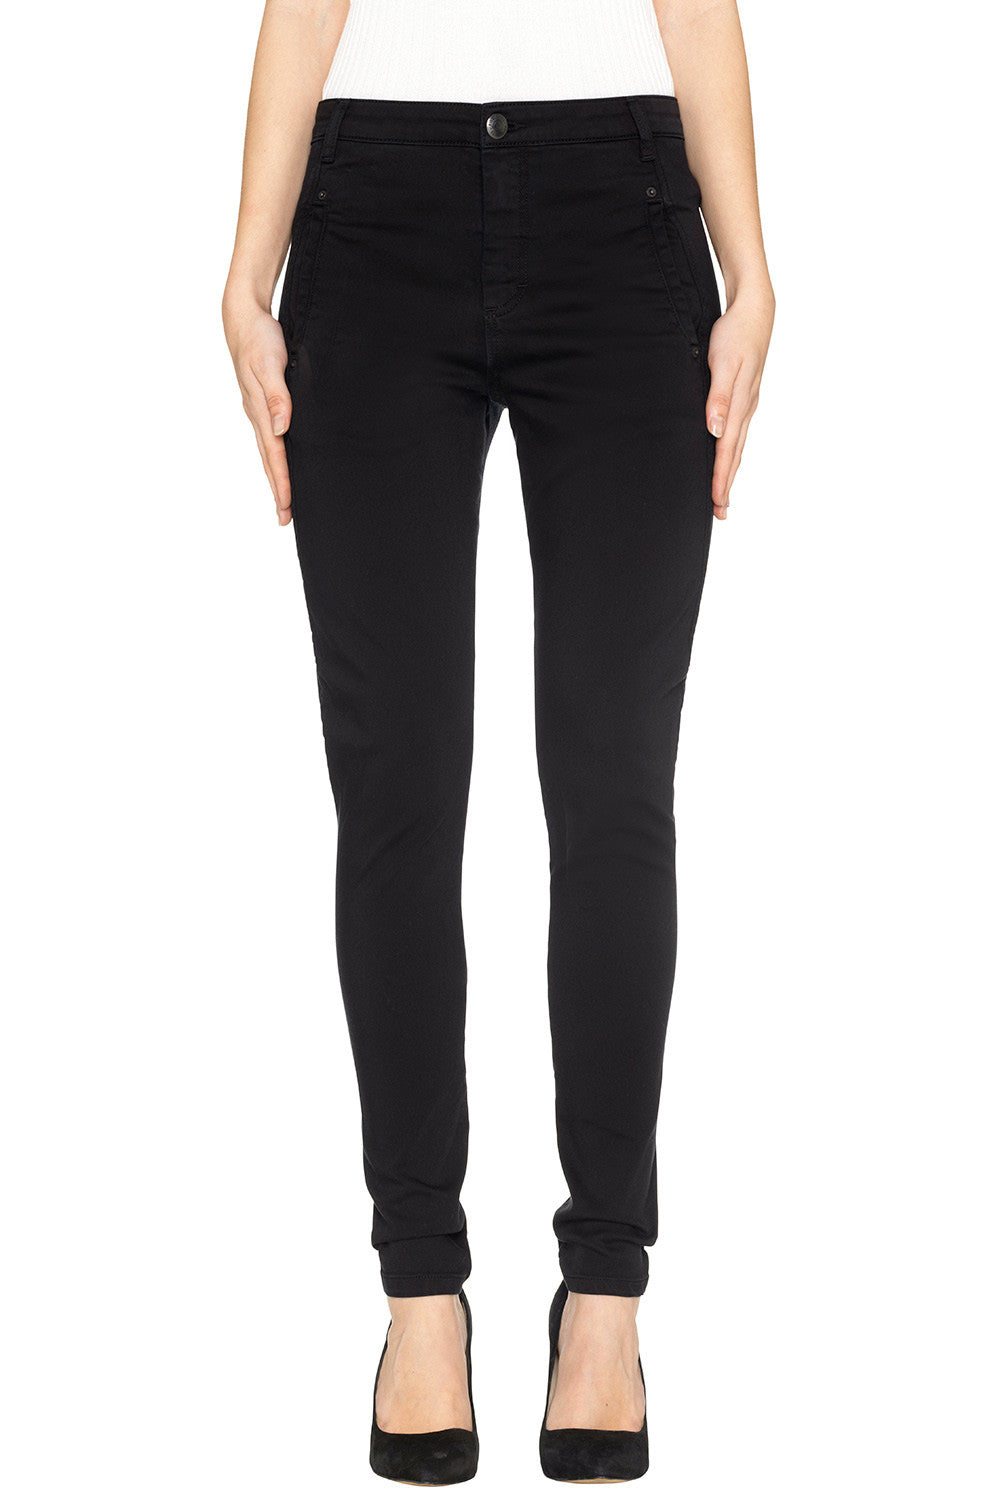 Five Units Jolie 606 Pants - Gun Black